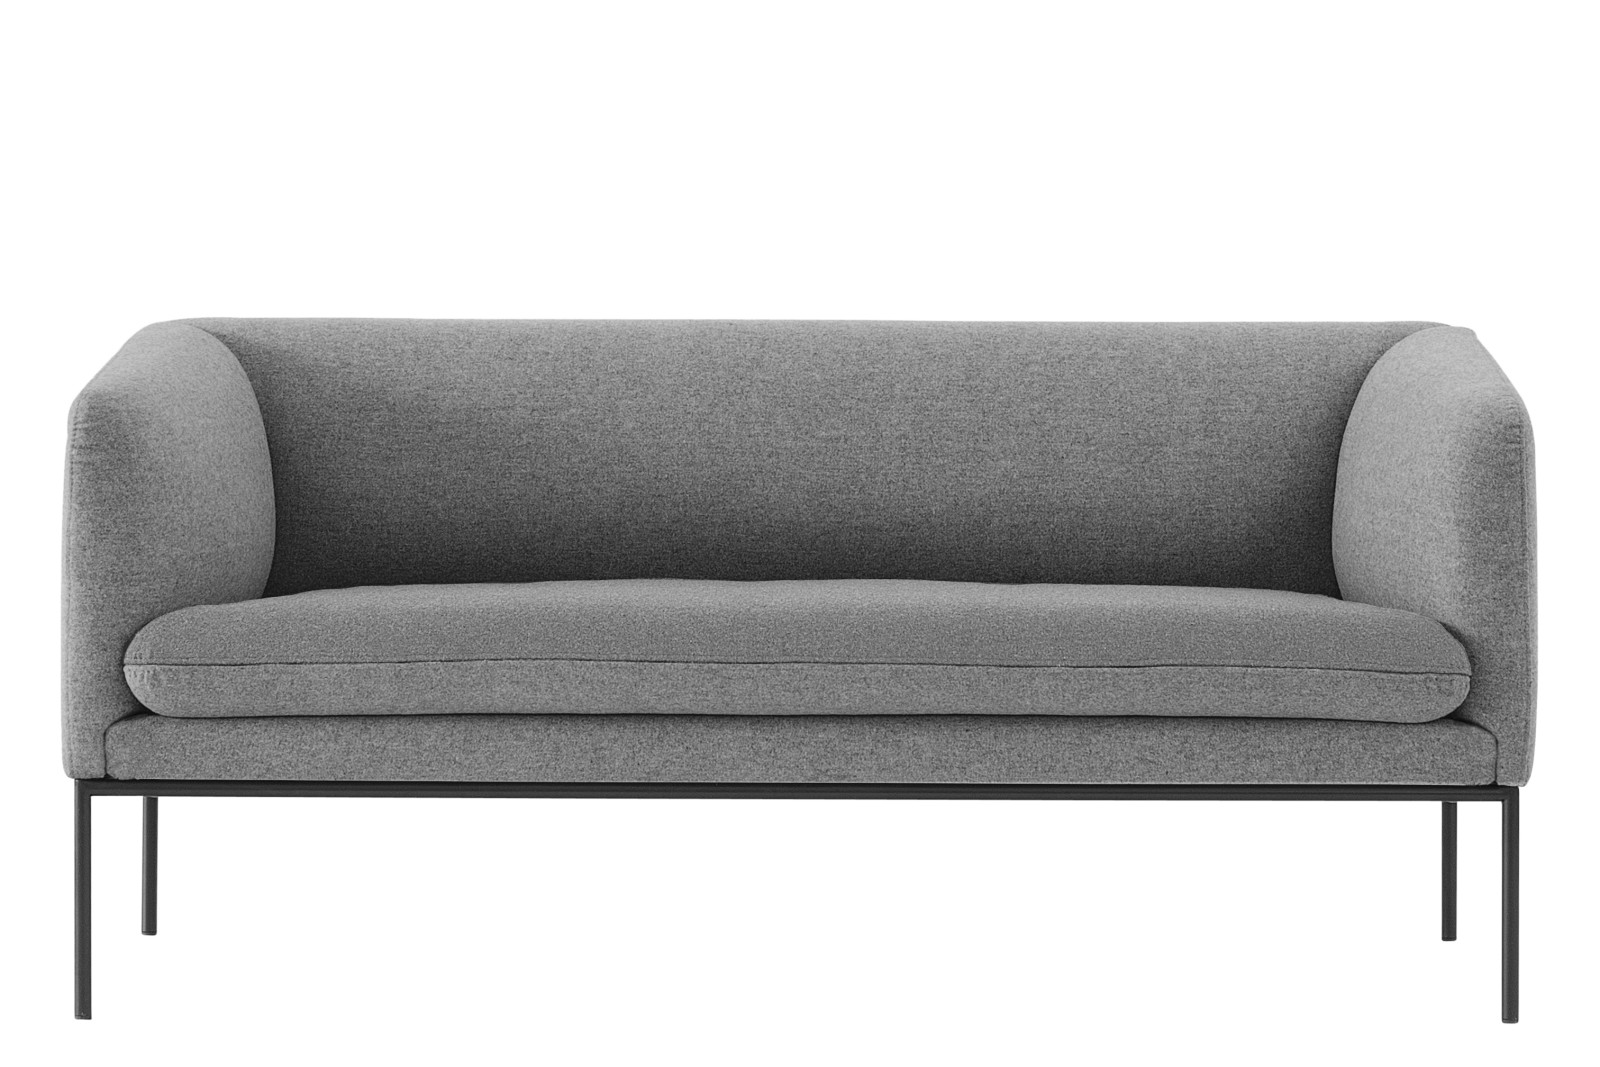 Turn 2 Seater Sofa Wool, Solid Light Grey, Without Crib 5